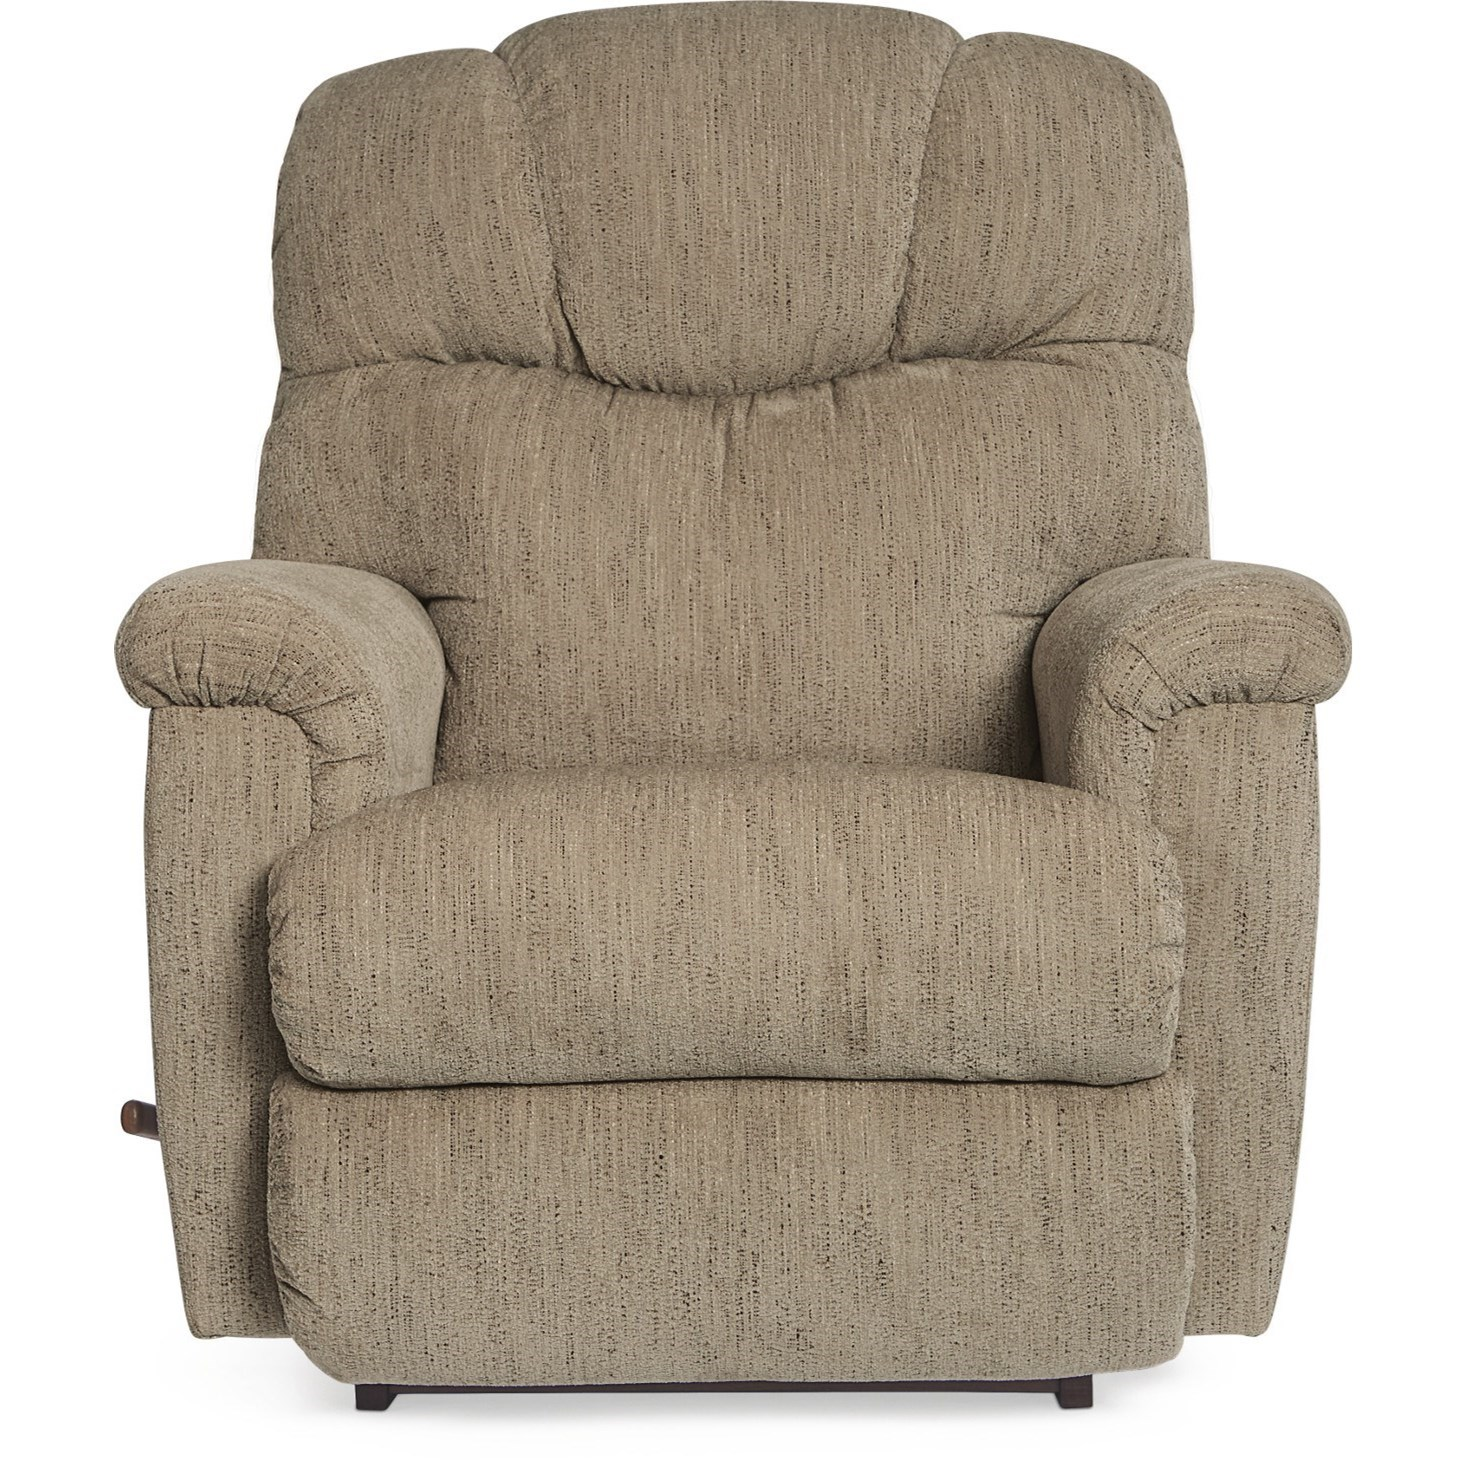 Lancer Wall Recliner by La-Z-Boy at Fisher Home Furnishings